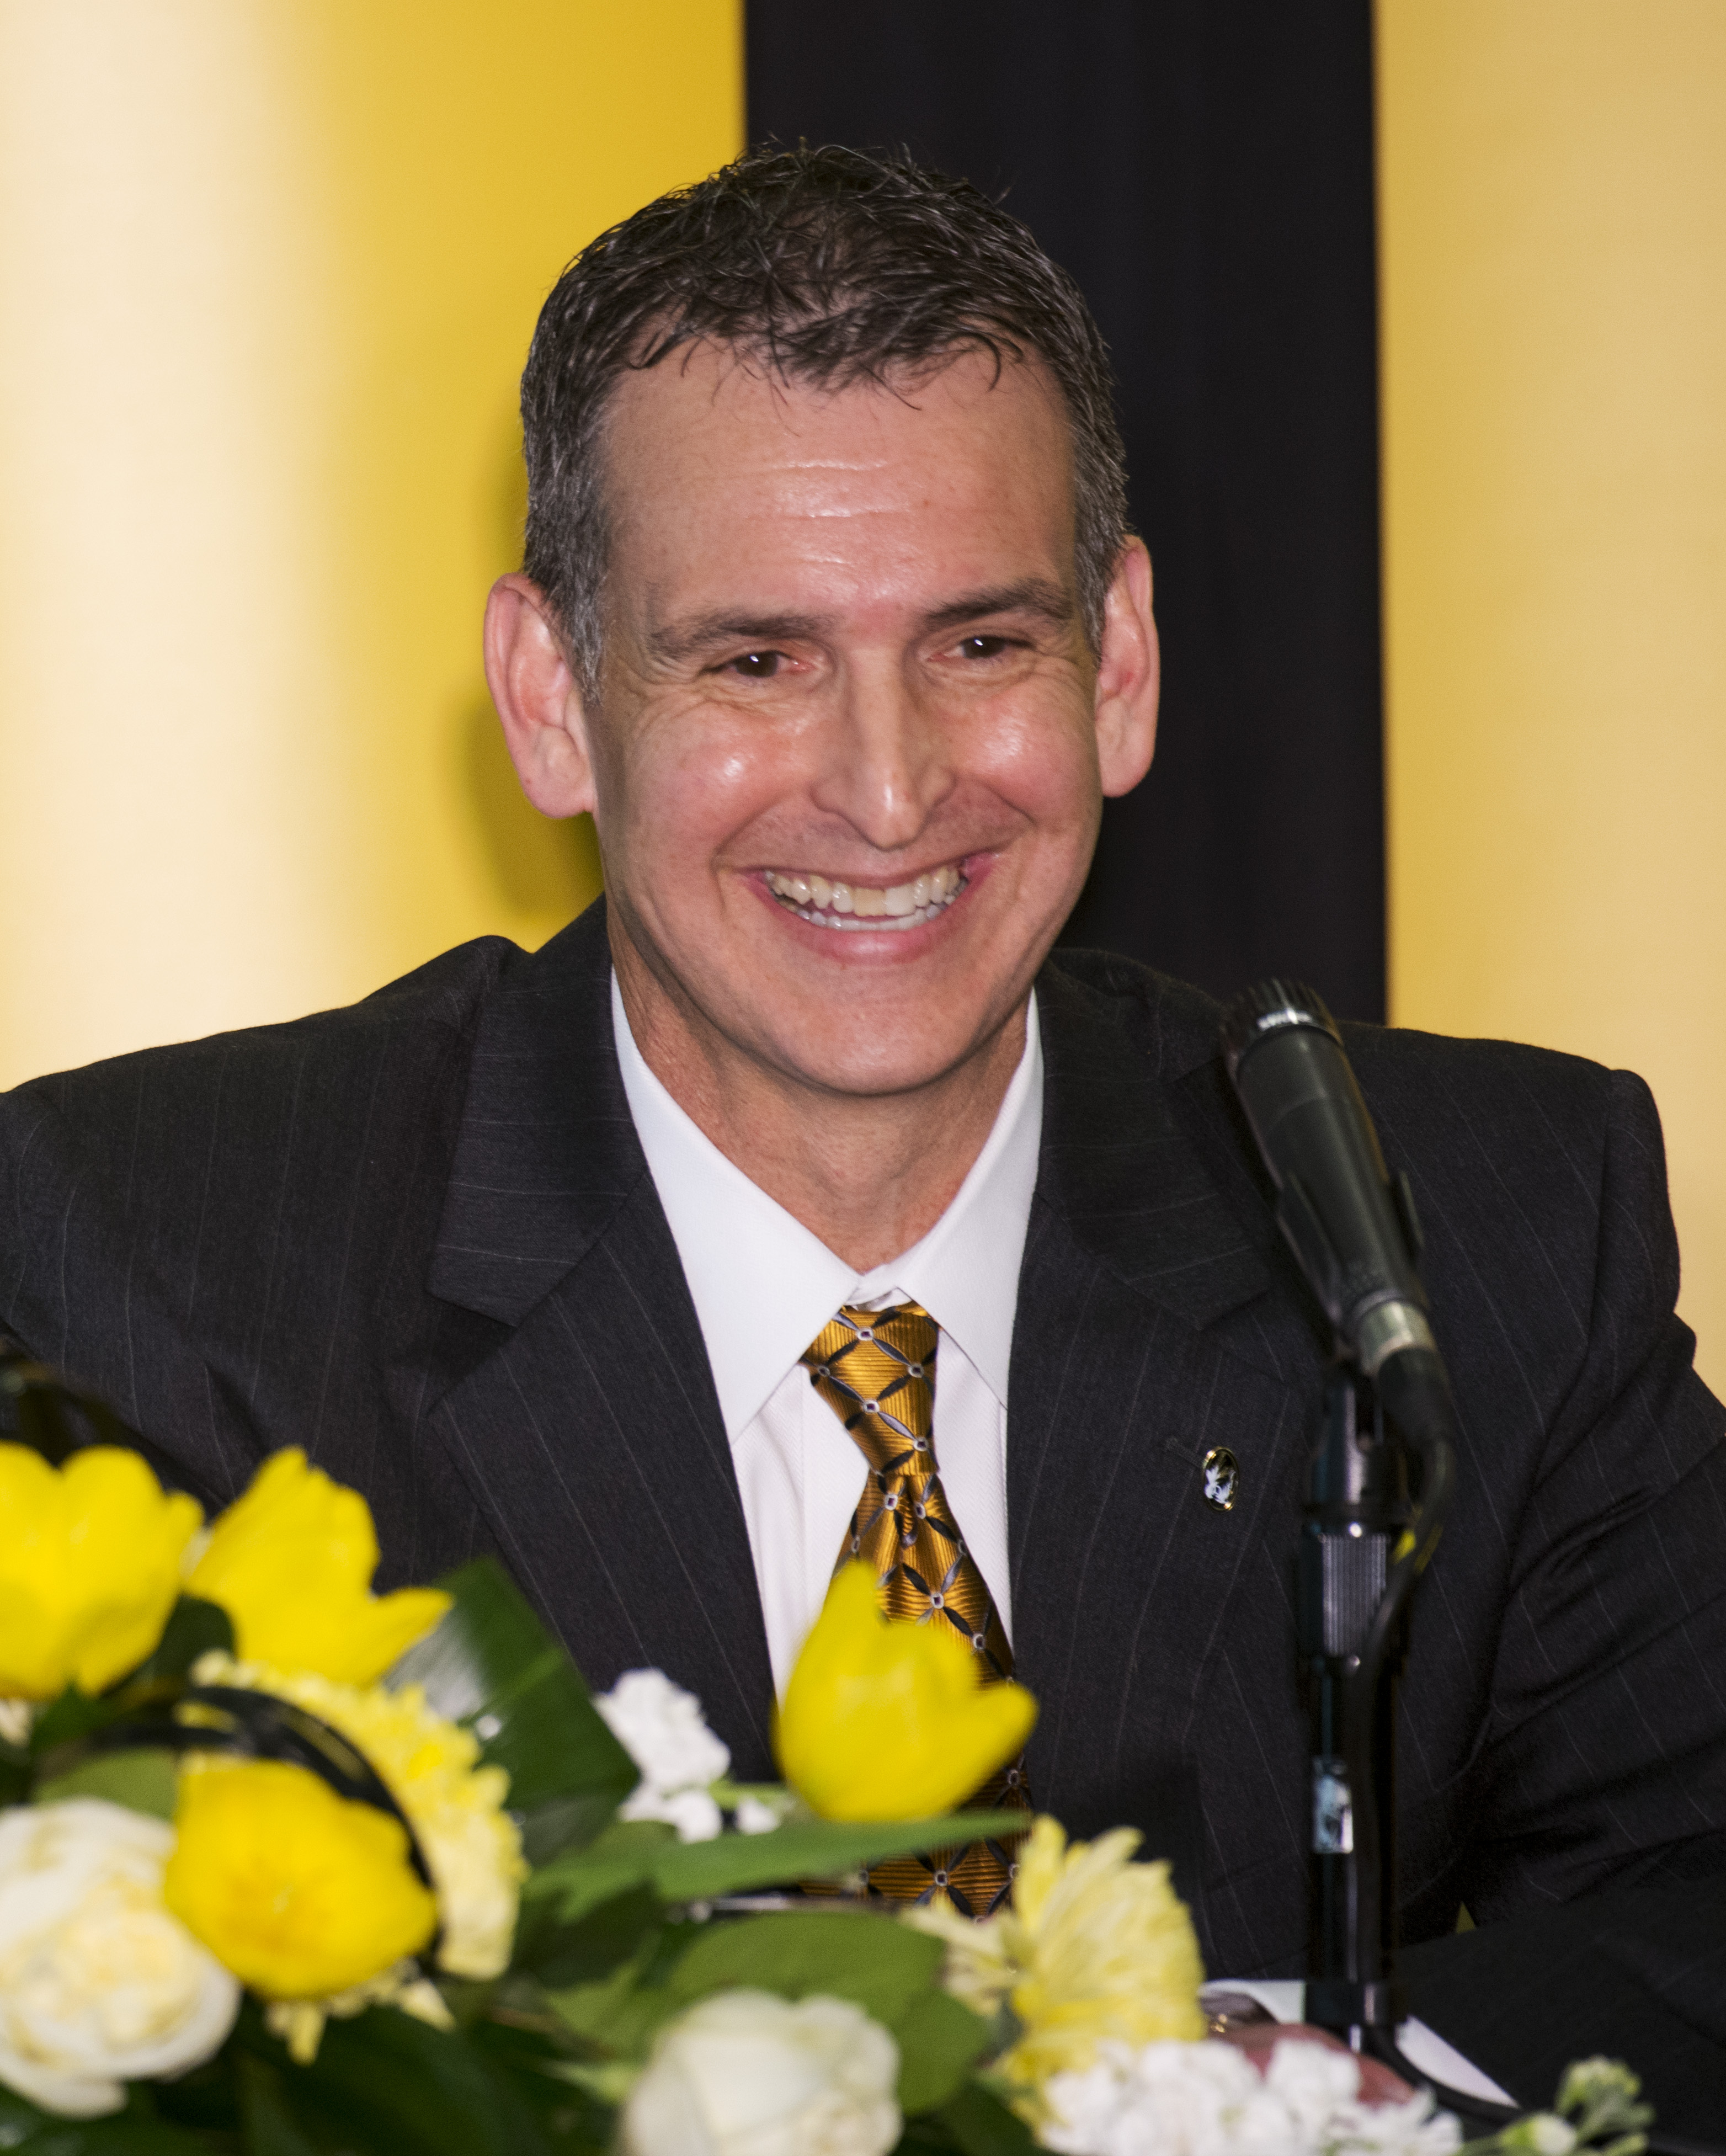 Missouri athletic director Mack Rhoades smiles during his introductory press conference Tuesday, March 10, 2015, on the University of Missouri campus in Columbia, Mo. (AP Photo/L.G. Patterson)